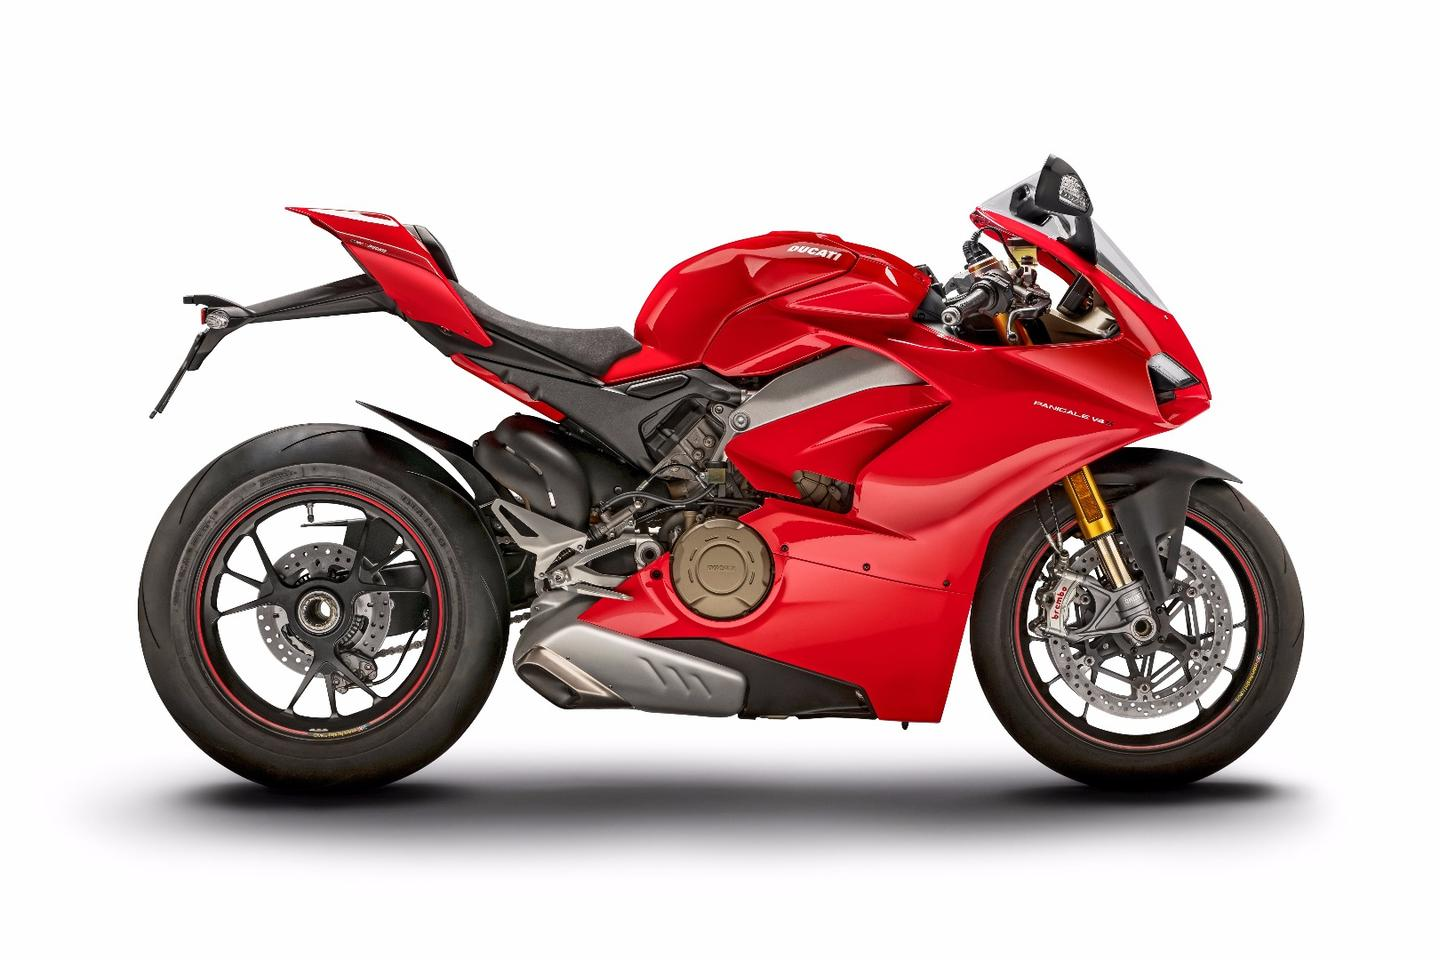 The 2018Panigale V4 is the most powerful bike ever in the superbike class